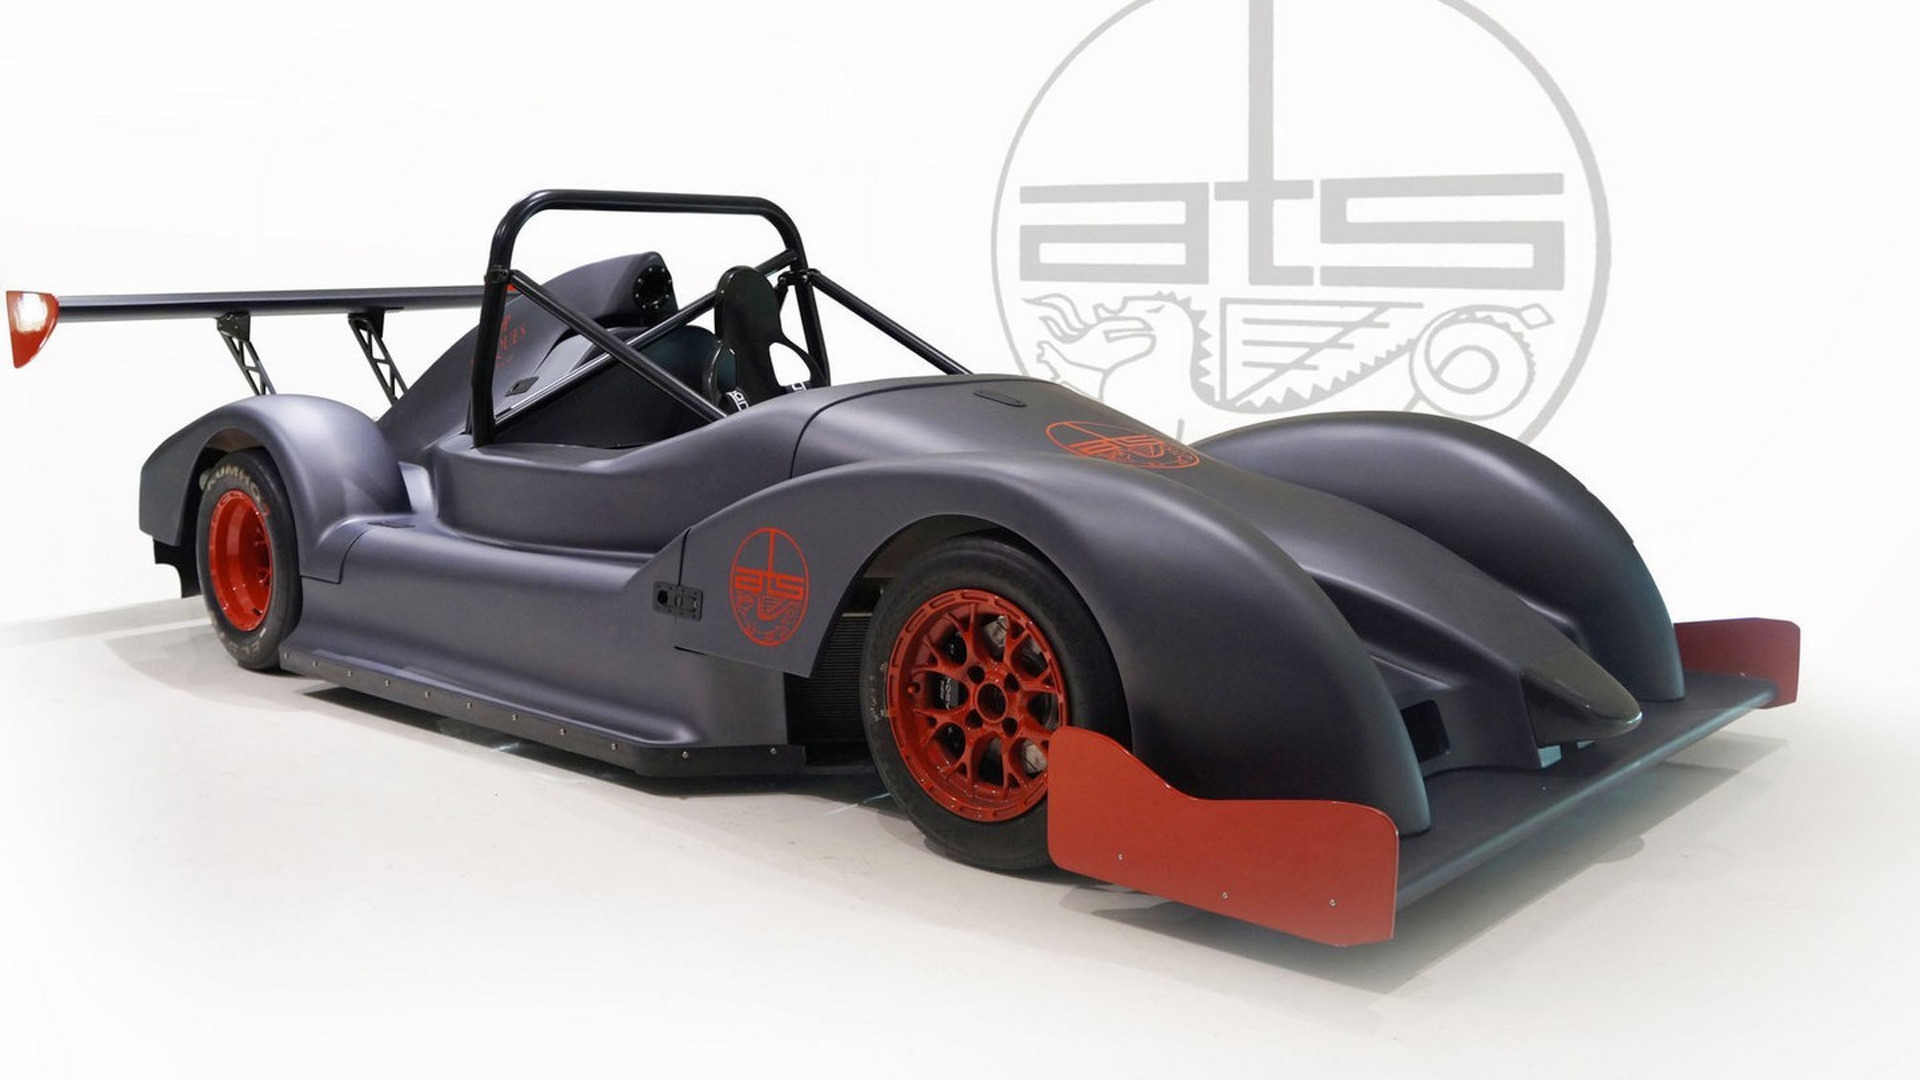 ATS Sport Dieci track car goes official with Honda motorcycle engine